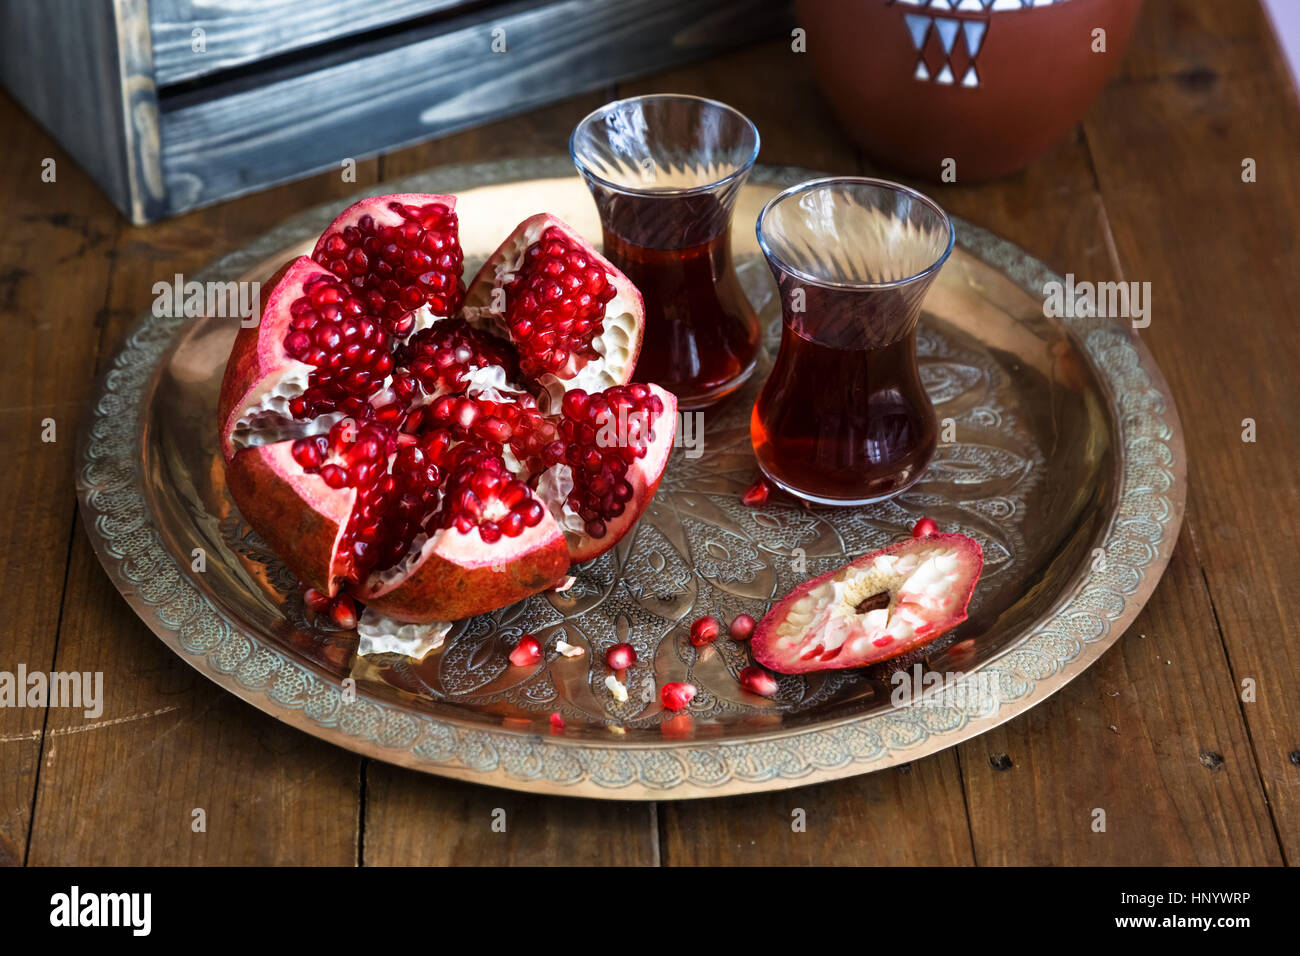 Ripe pomegranate fruit on wooden vintage table. Close view - Stock Image